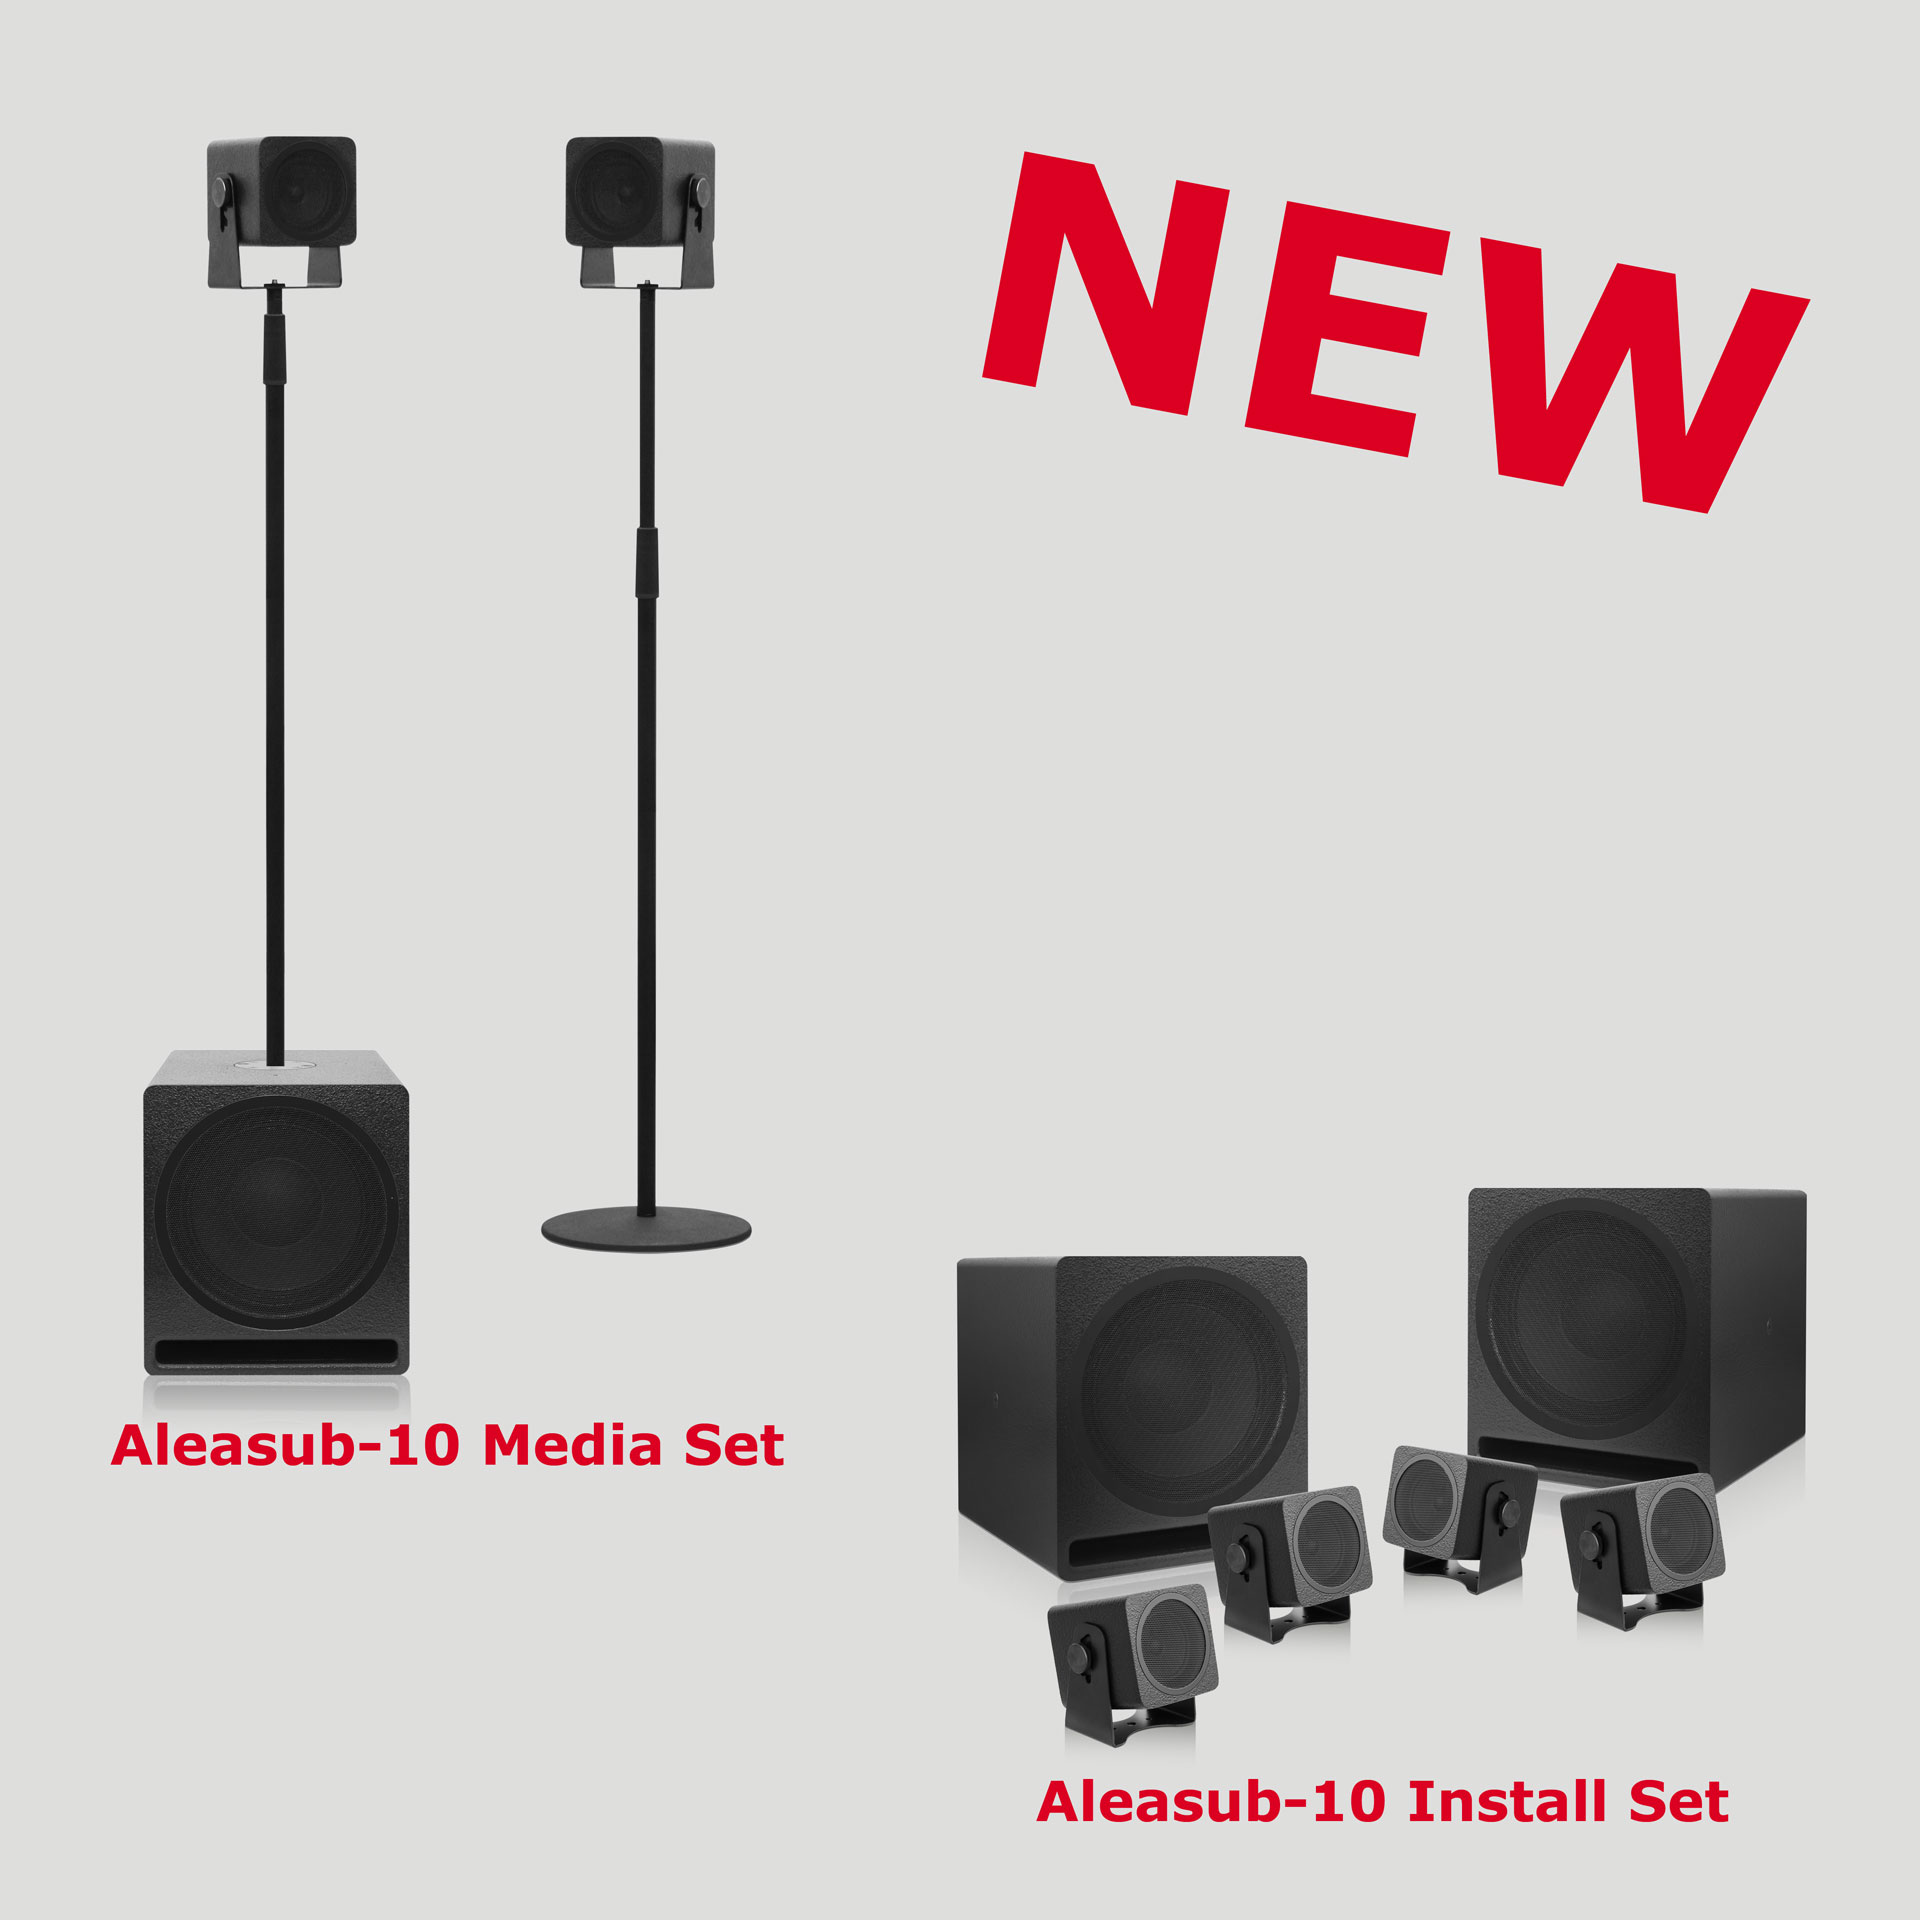 New in the program: Aleasub-10 Sets